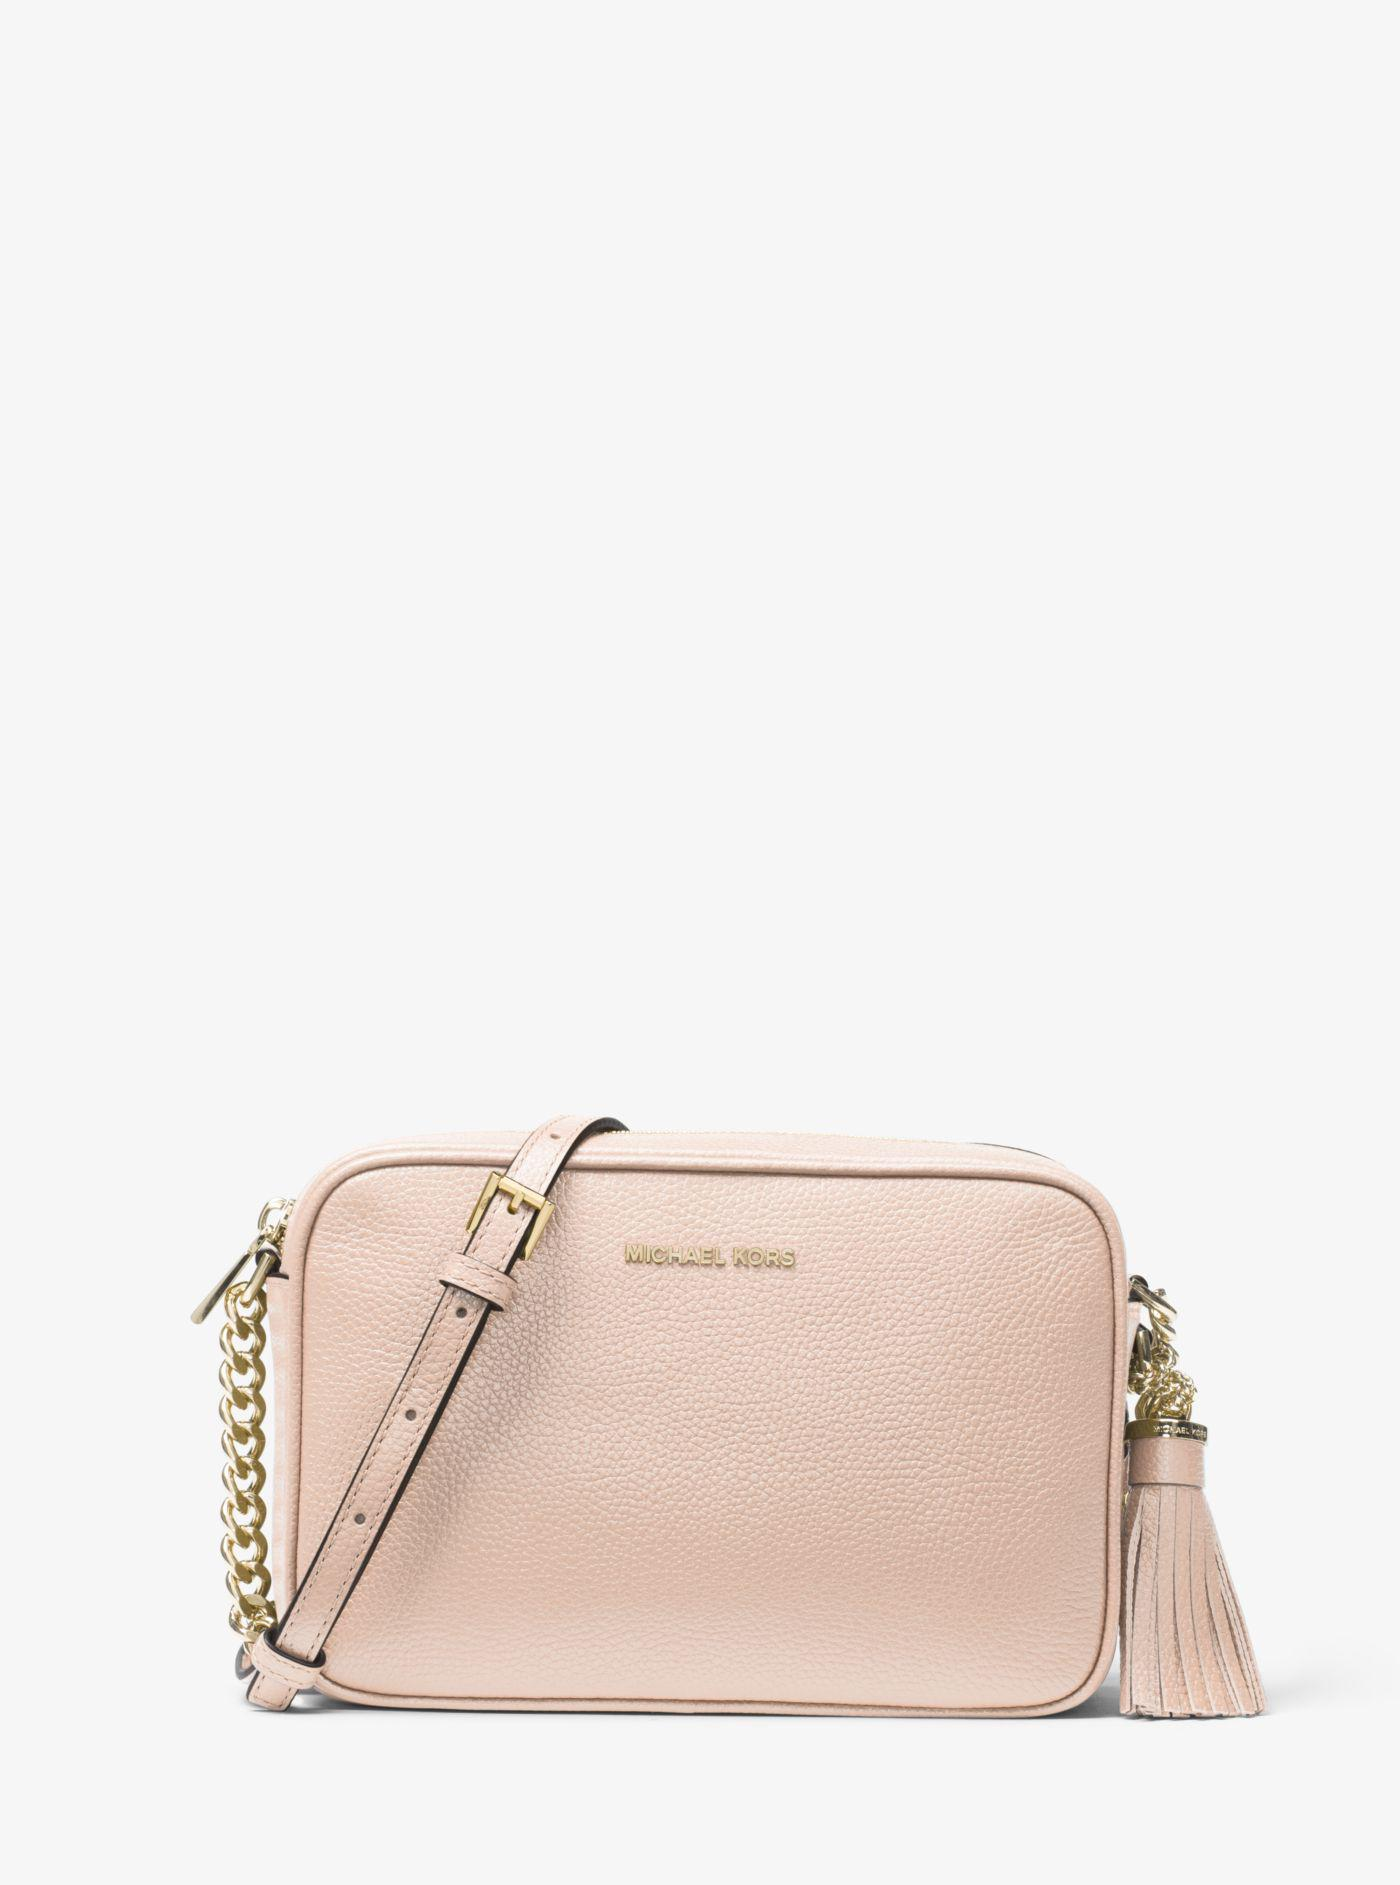 47bd885ac2c1 Michael Kors - Pink Ginny Leather Crossbody - Lyst. View fullscreen